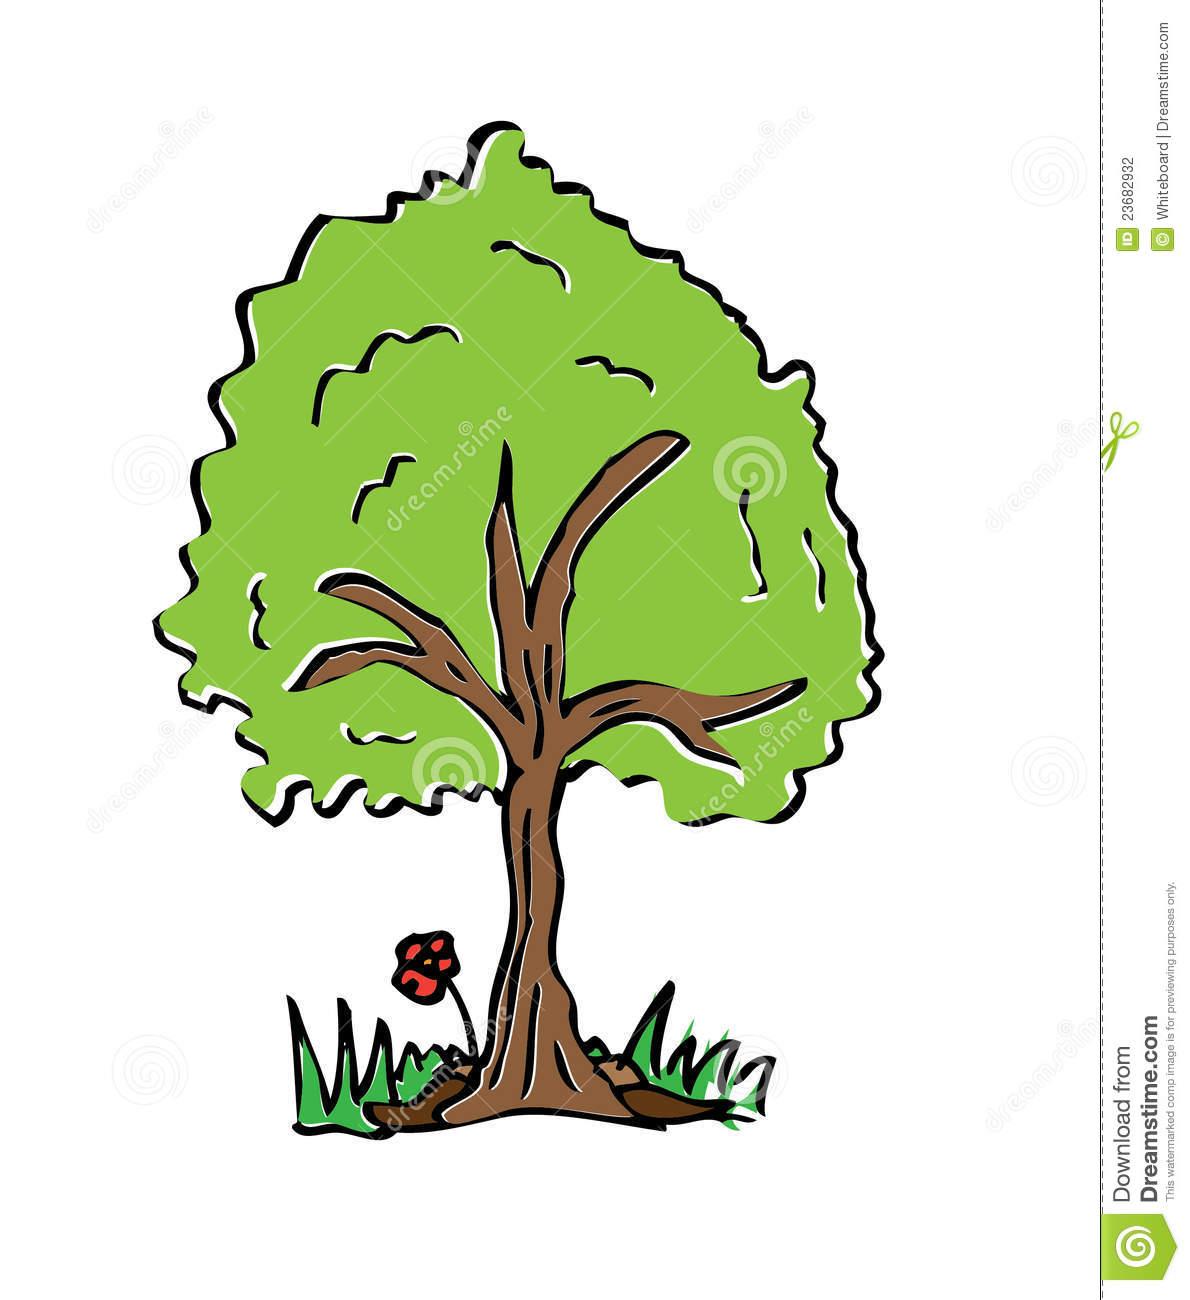 Cartoon drawing tree with color stock illustration - Dessin de arbre ...